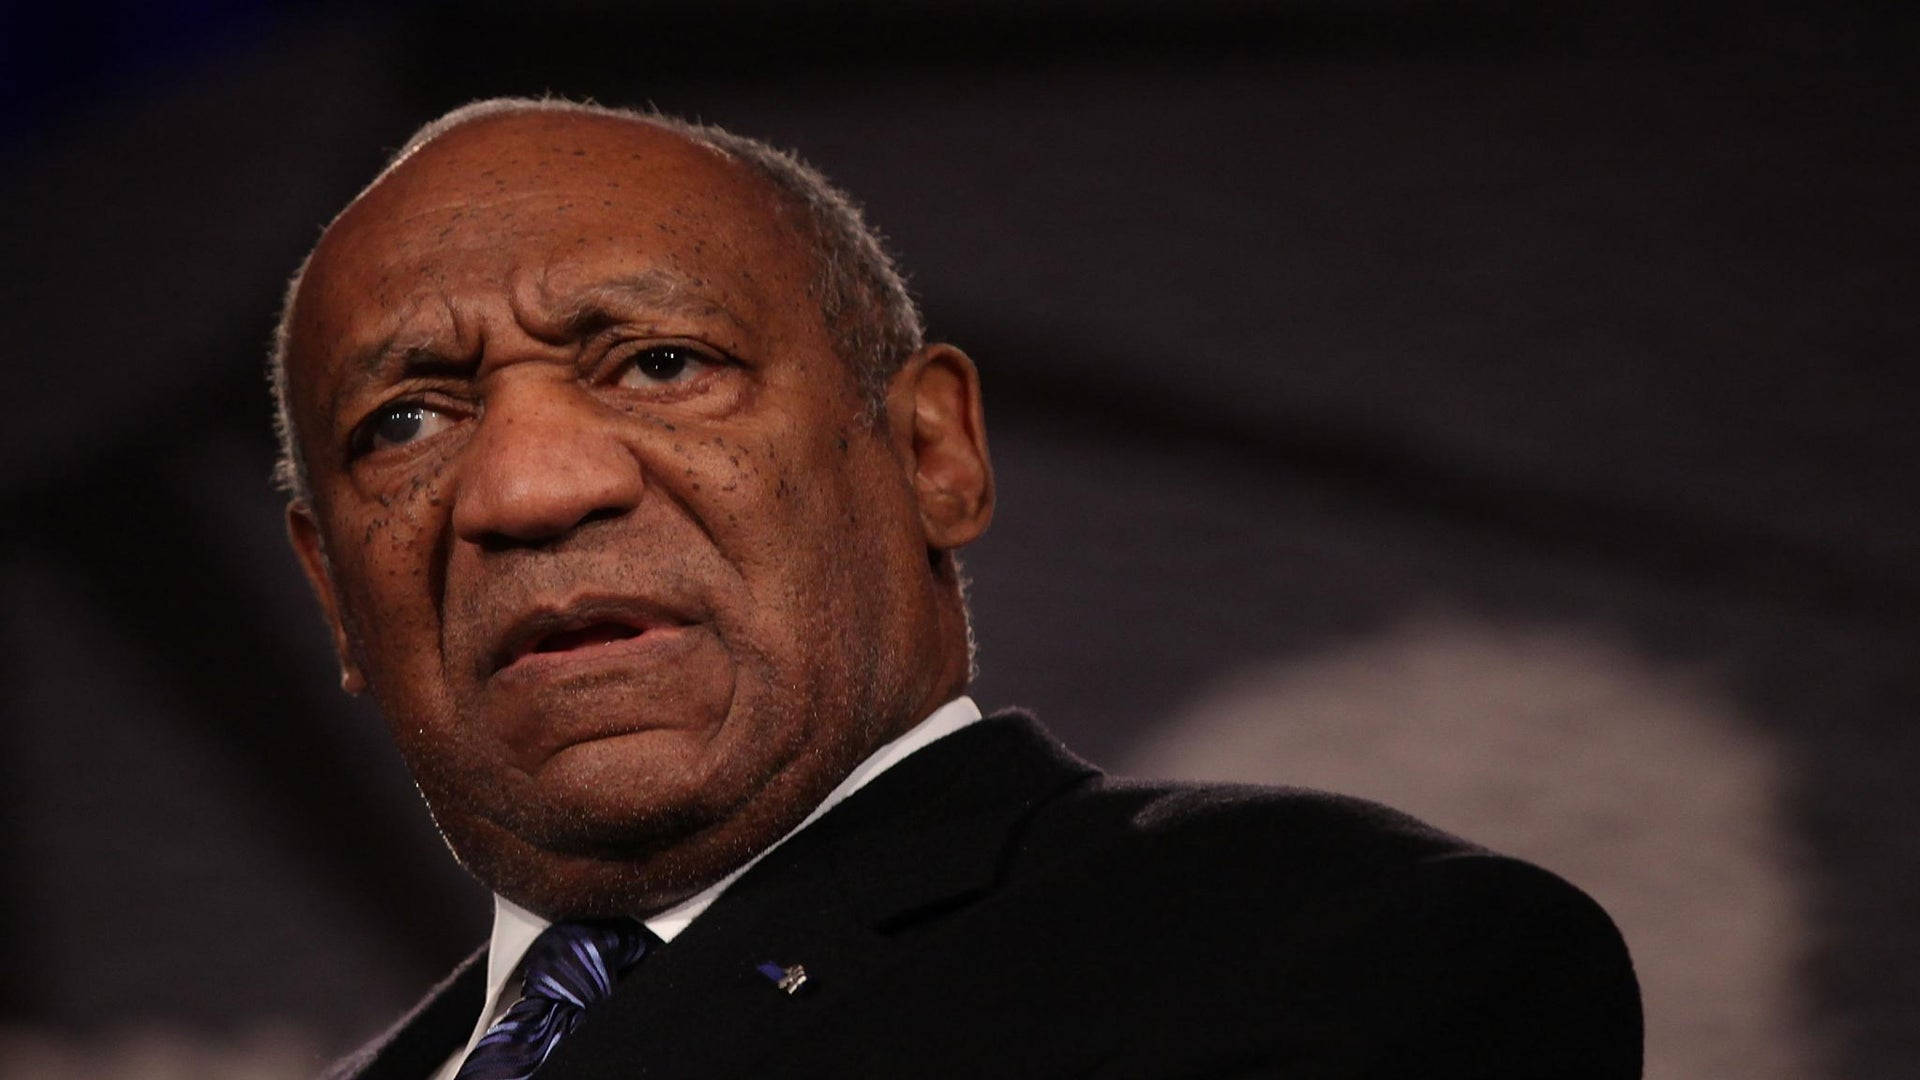 Bill Cosby Defamation Case Dismissed